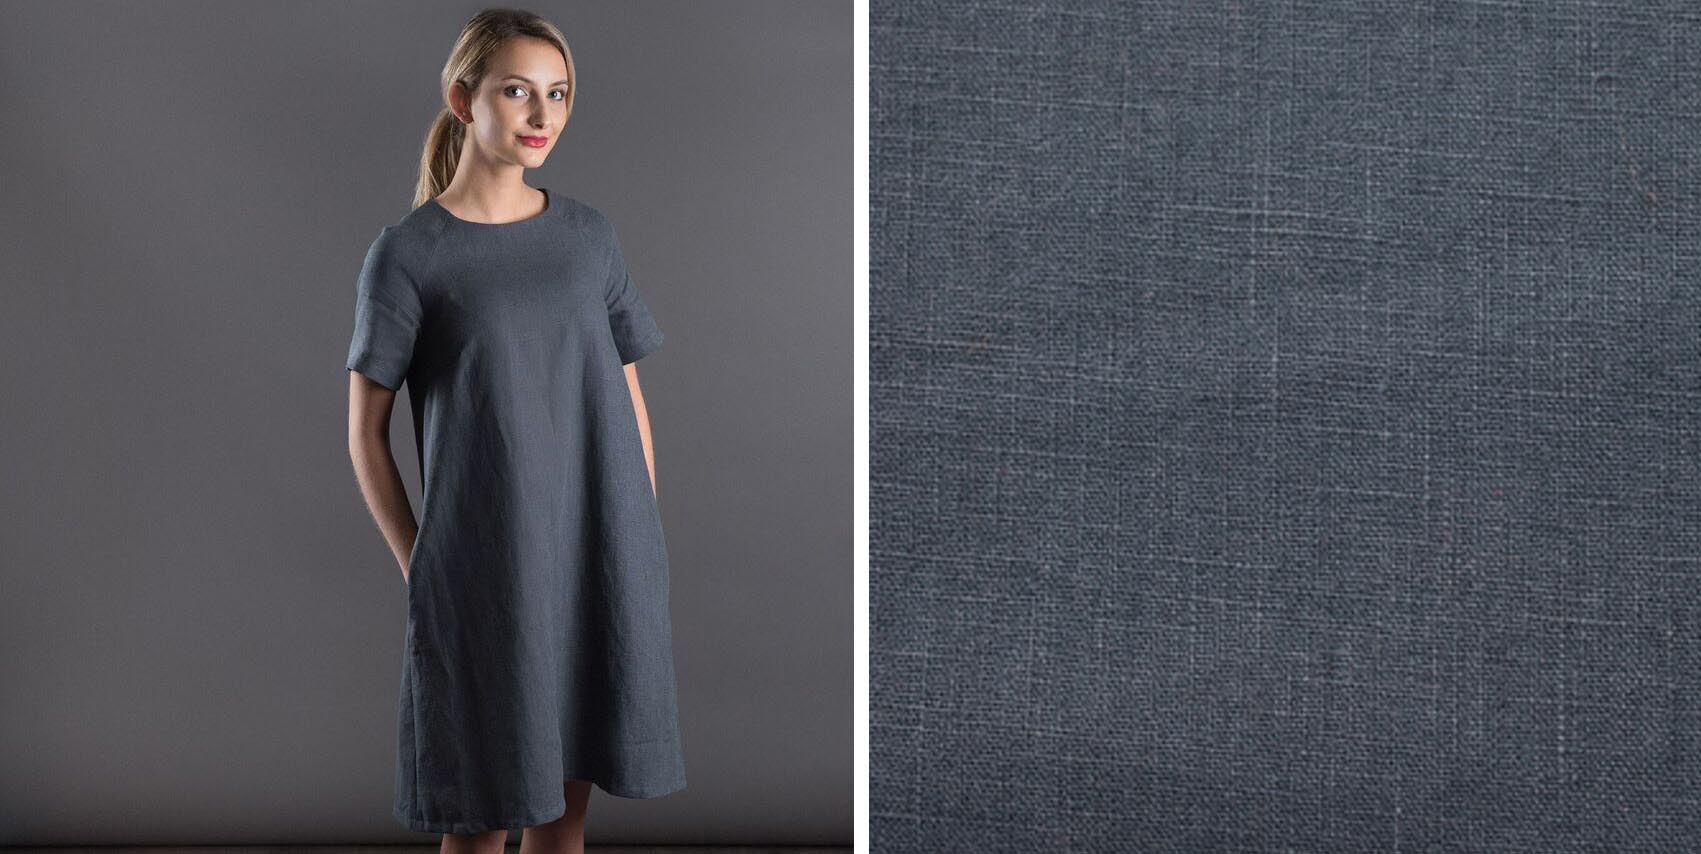 New Raglan Dress – The Avid Seamstress